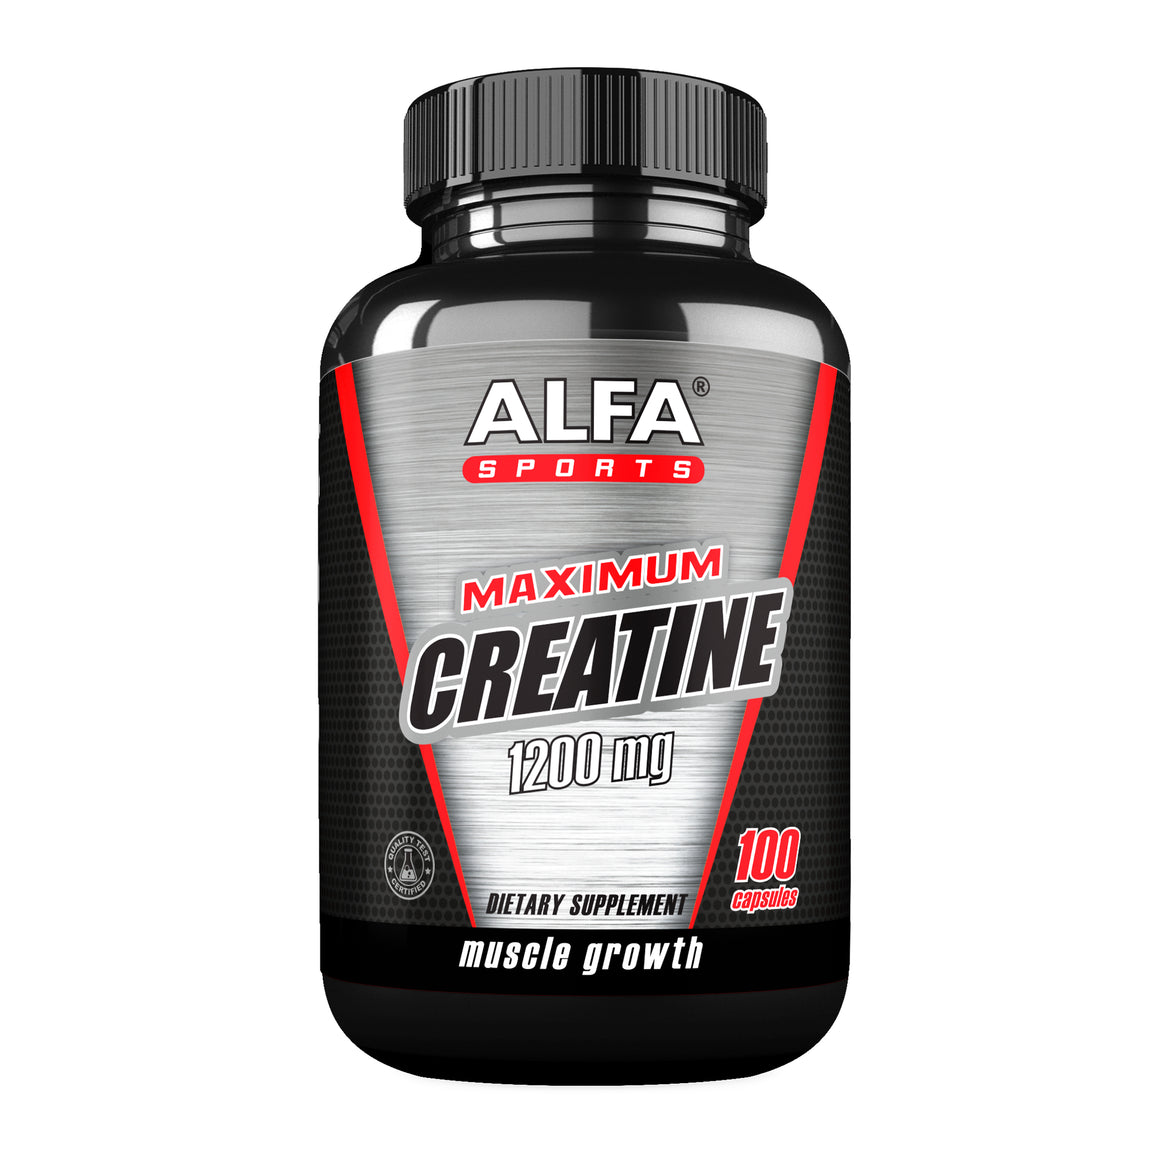 Maximum Creatine 1200 mg - Muscle Growth - 100 capsules